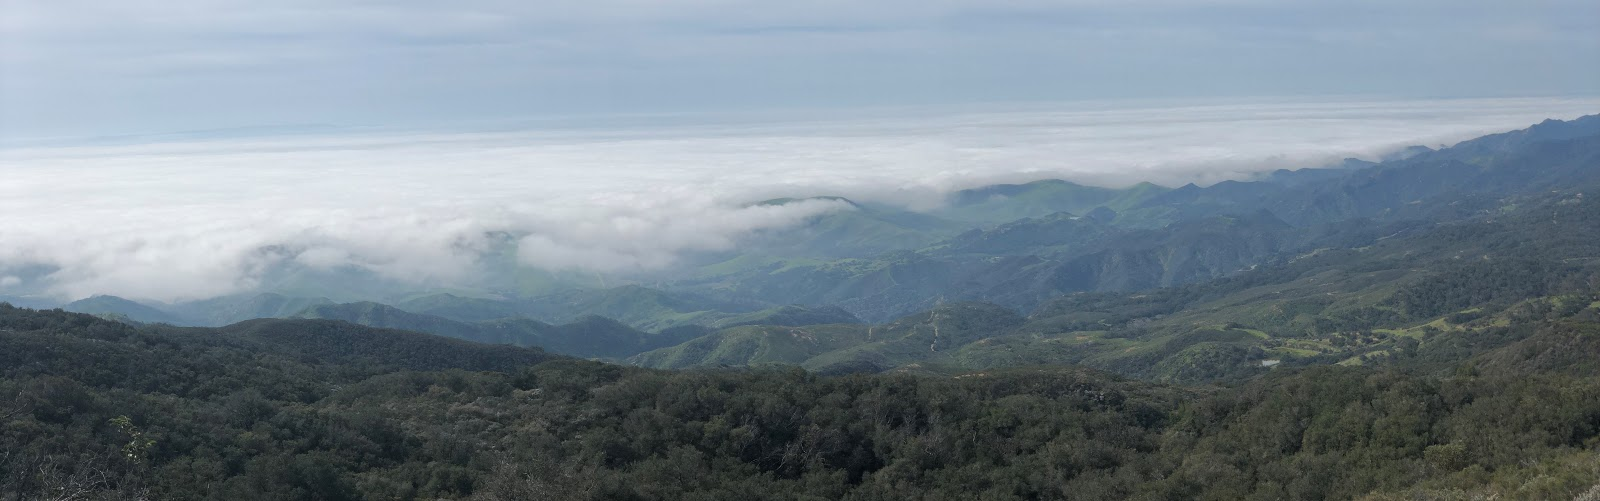 Cycling Refugio Road - aerial drone photo of clouds and hillside